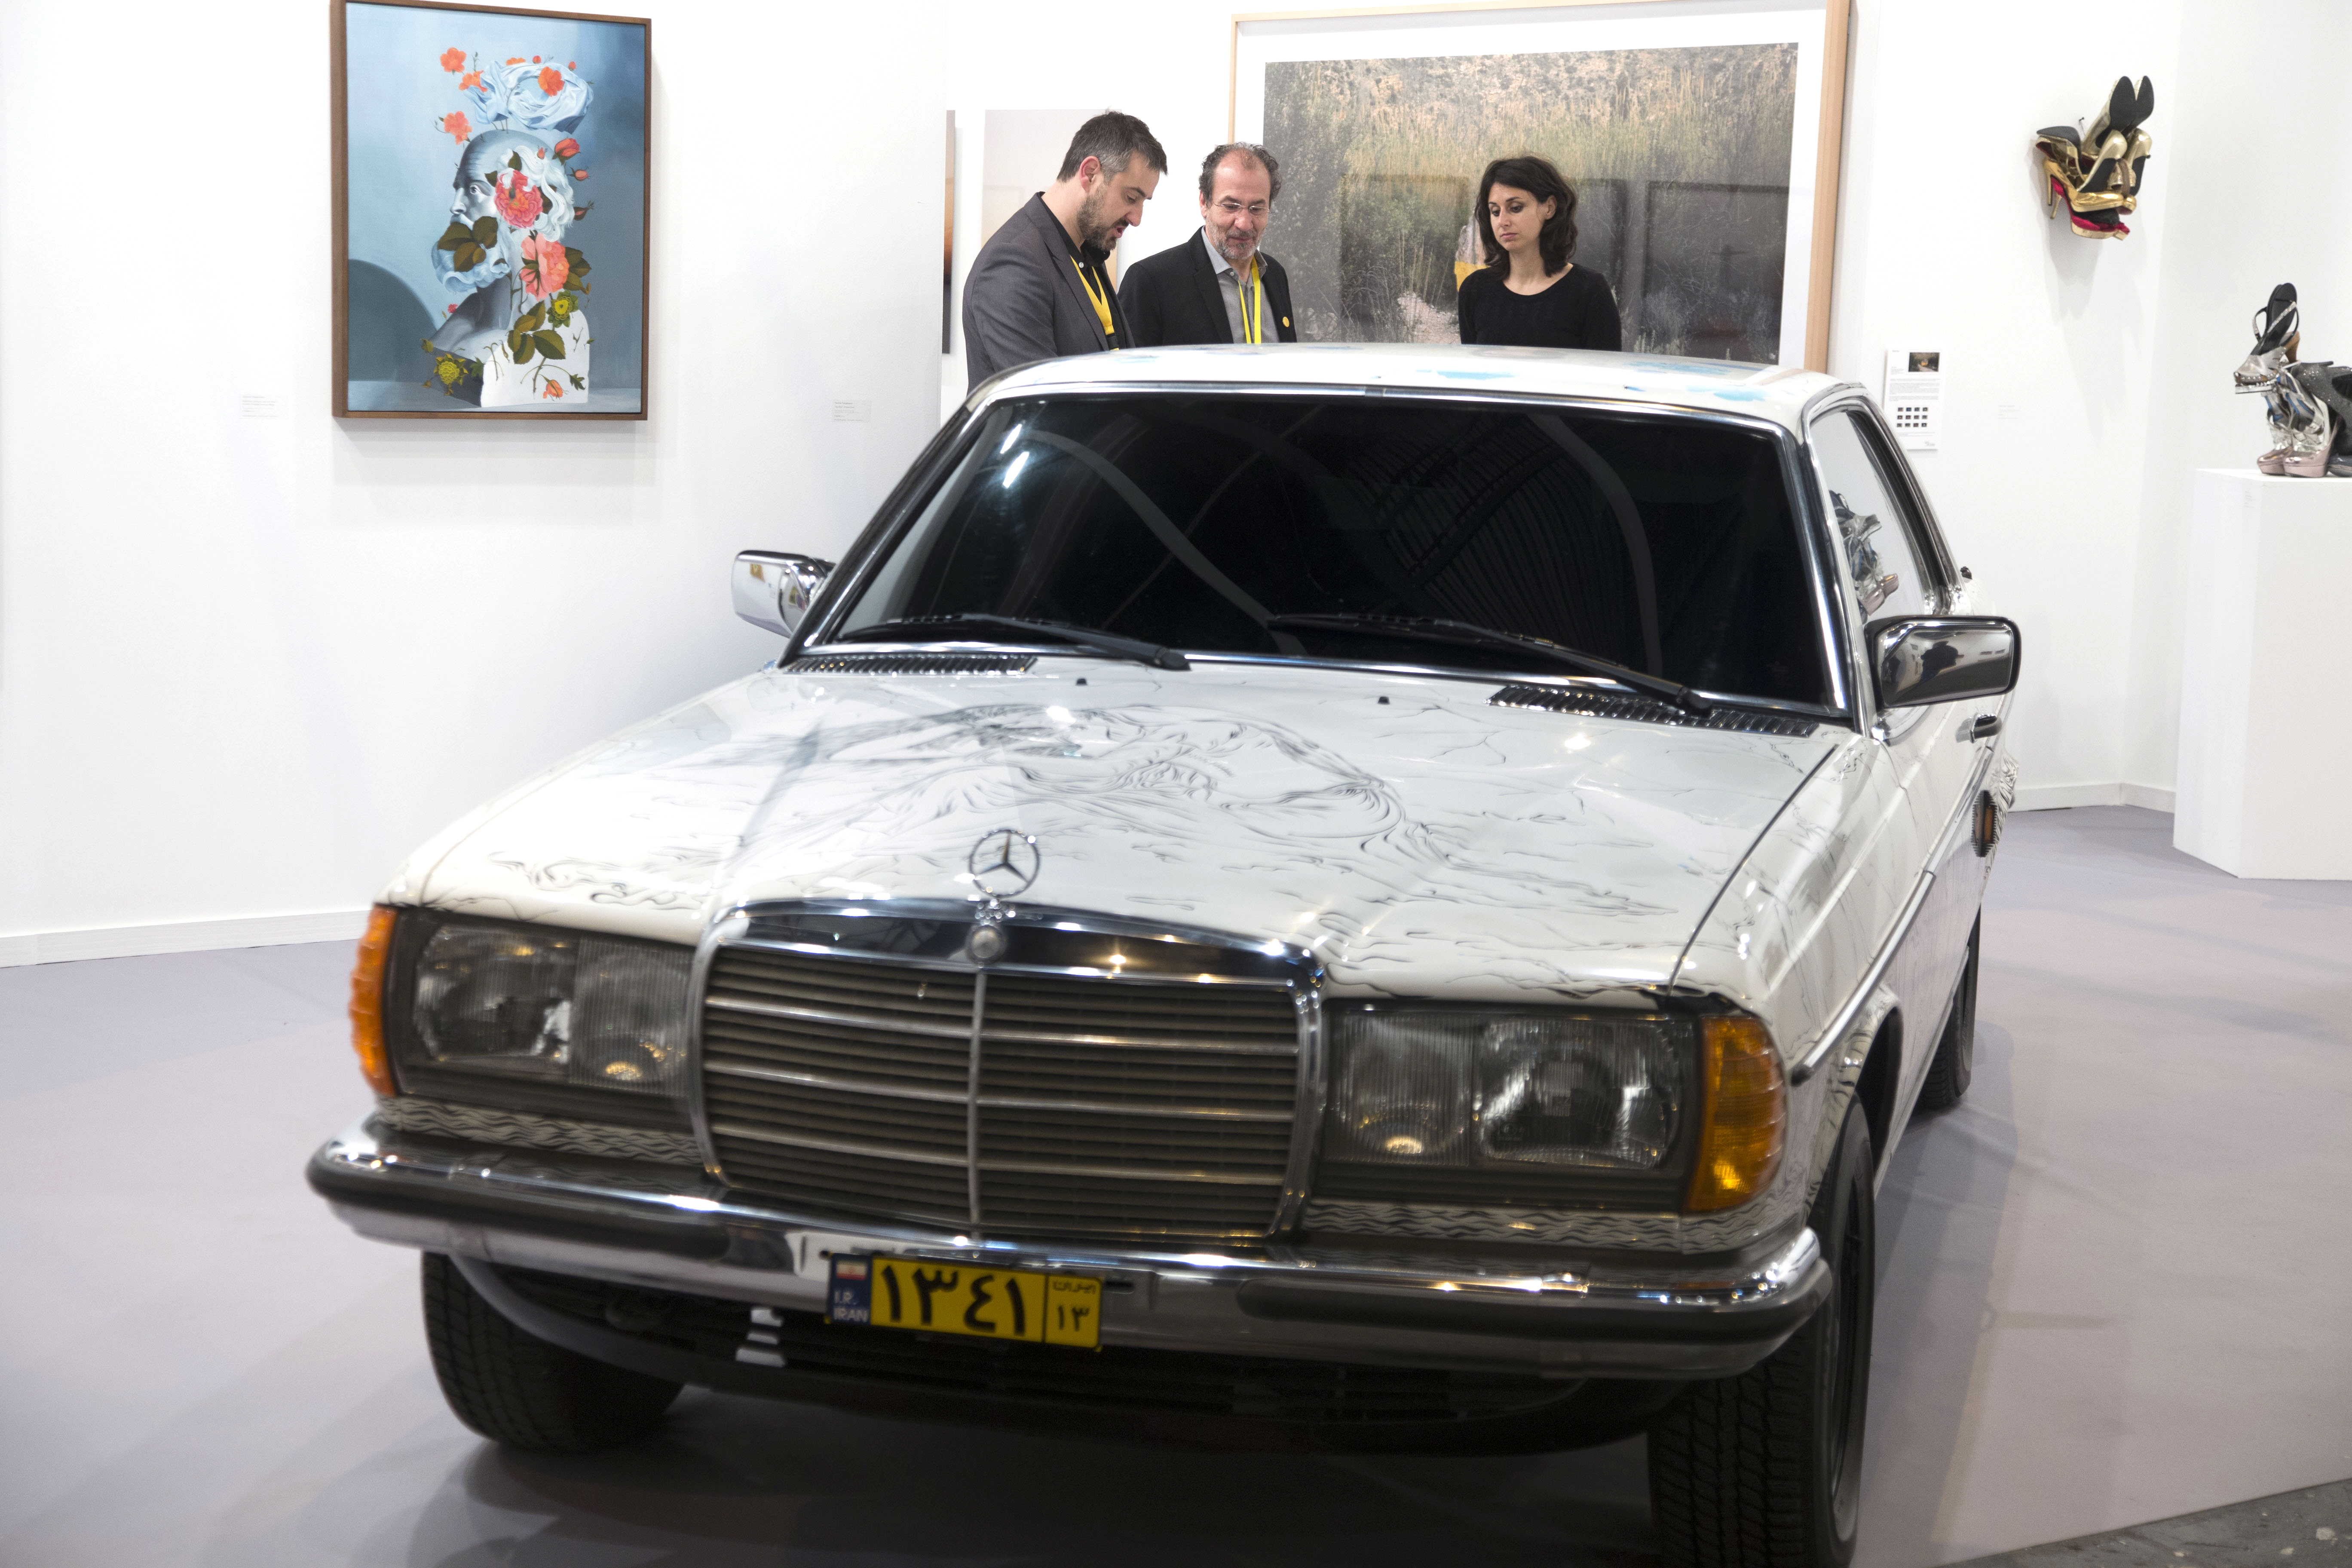 What Sold at ARCOmadrid